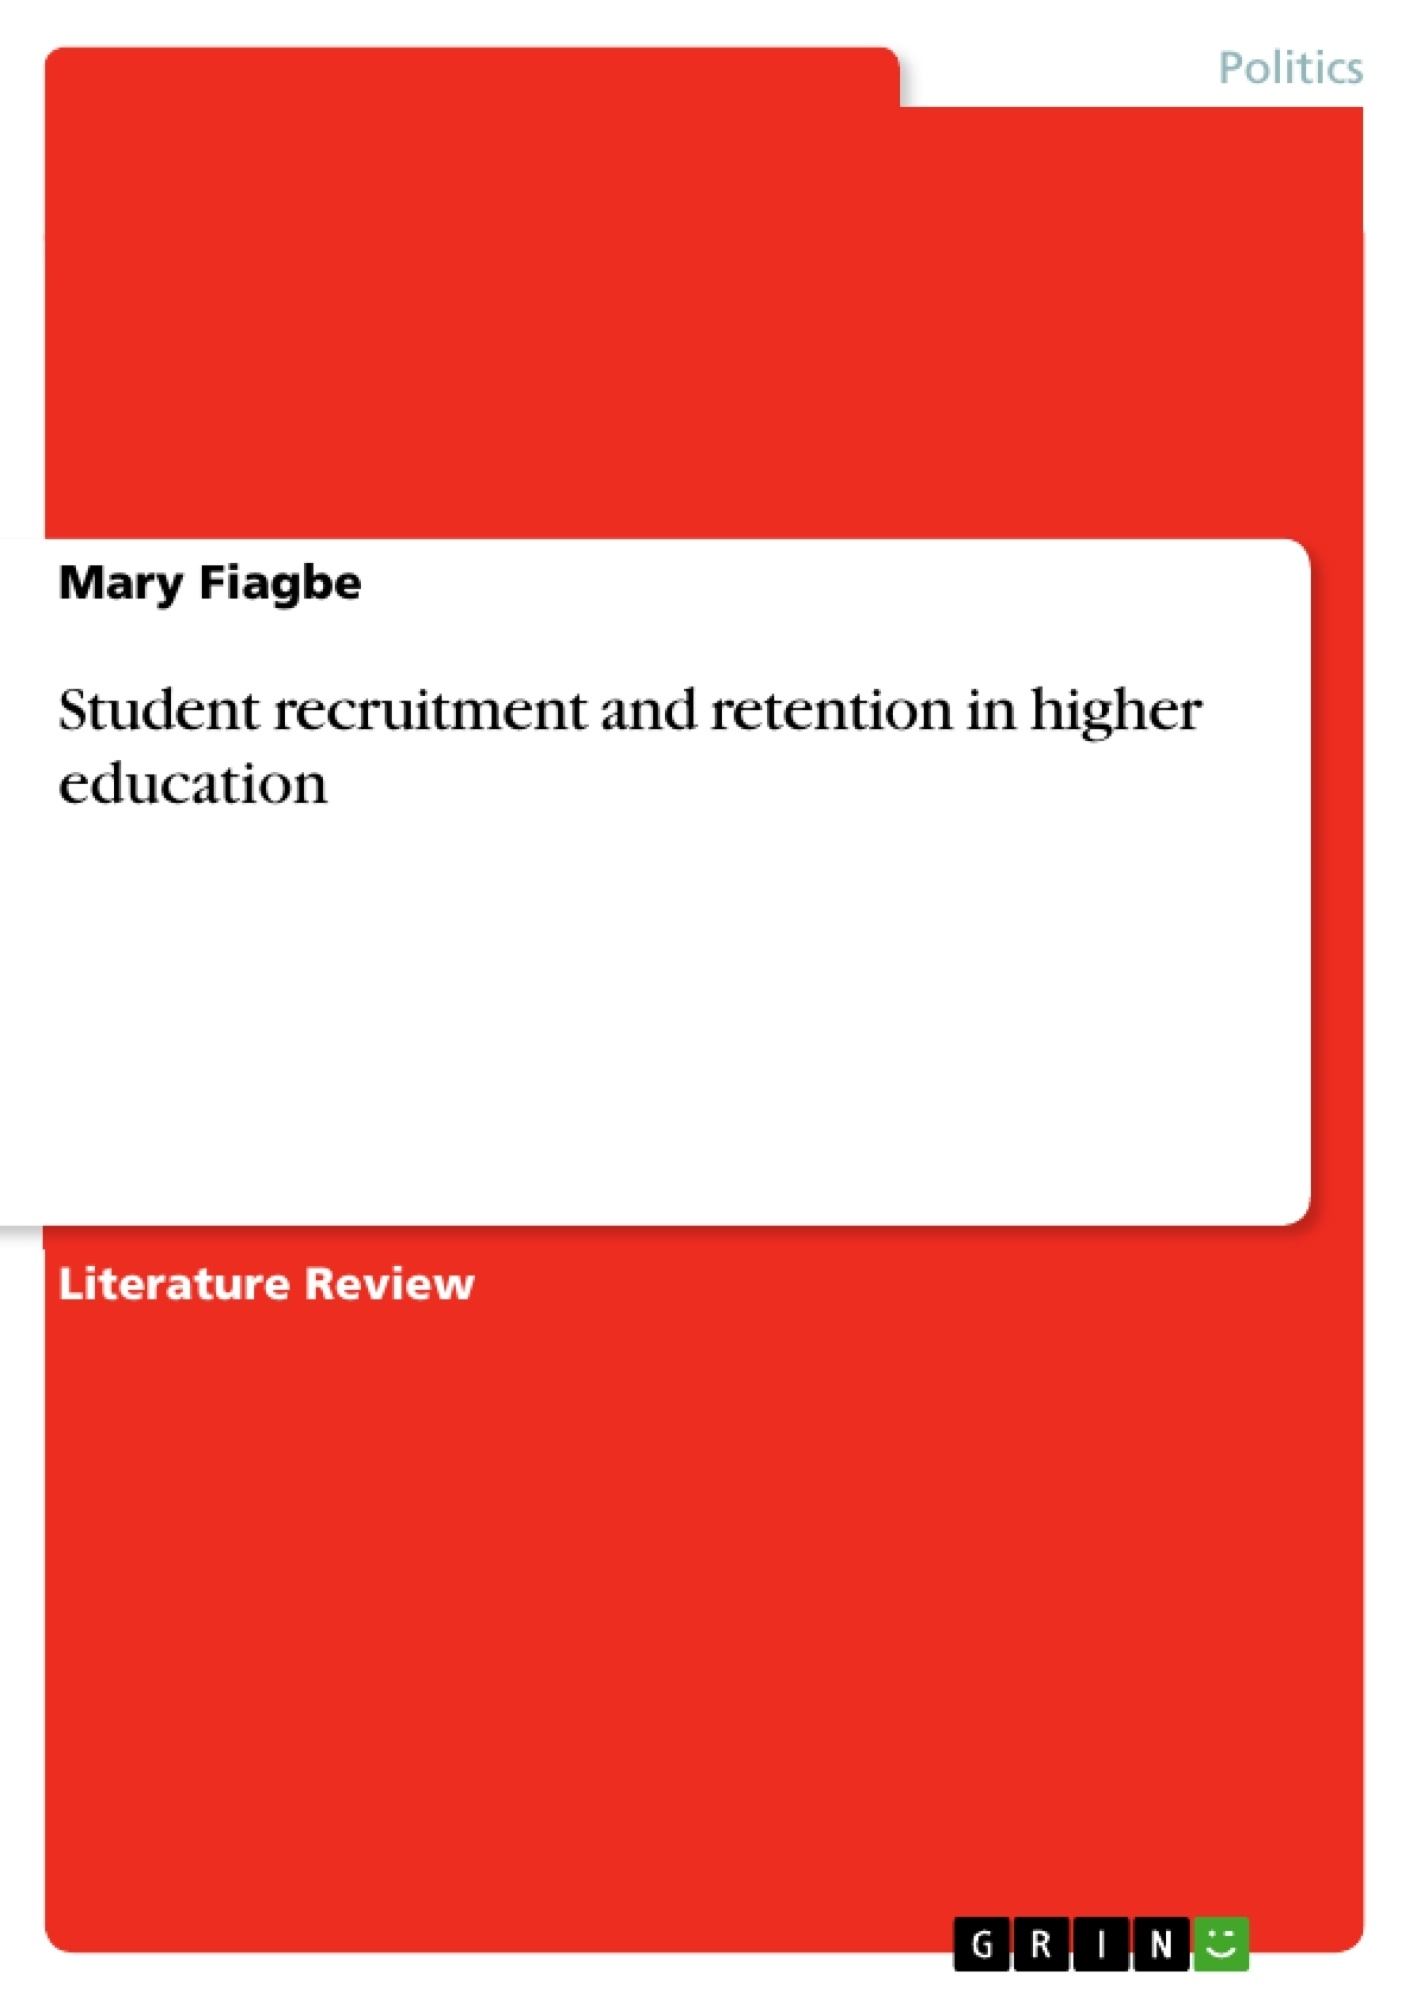 Title: Student recruitment and retention in higher education